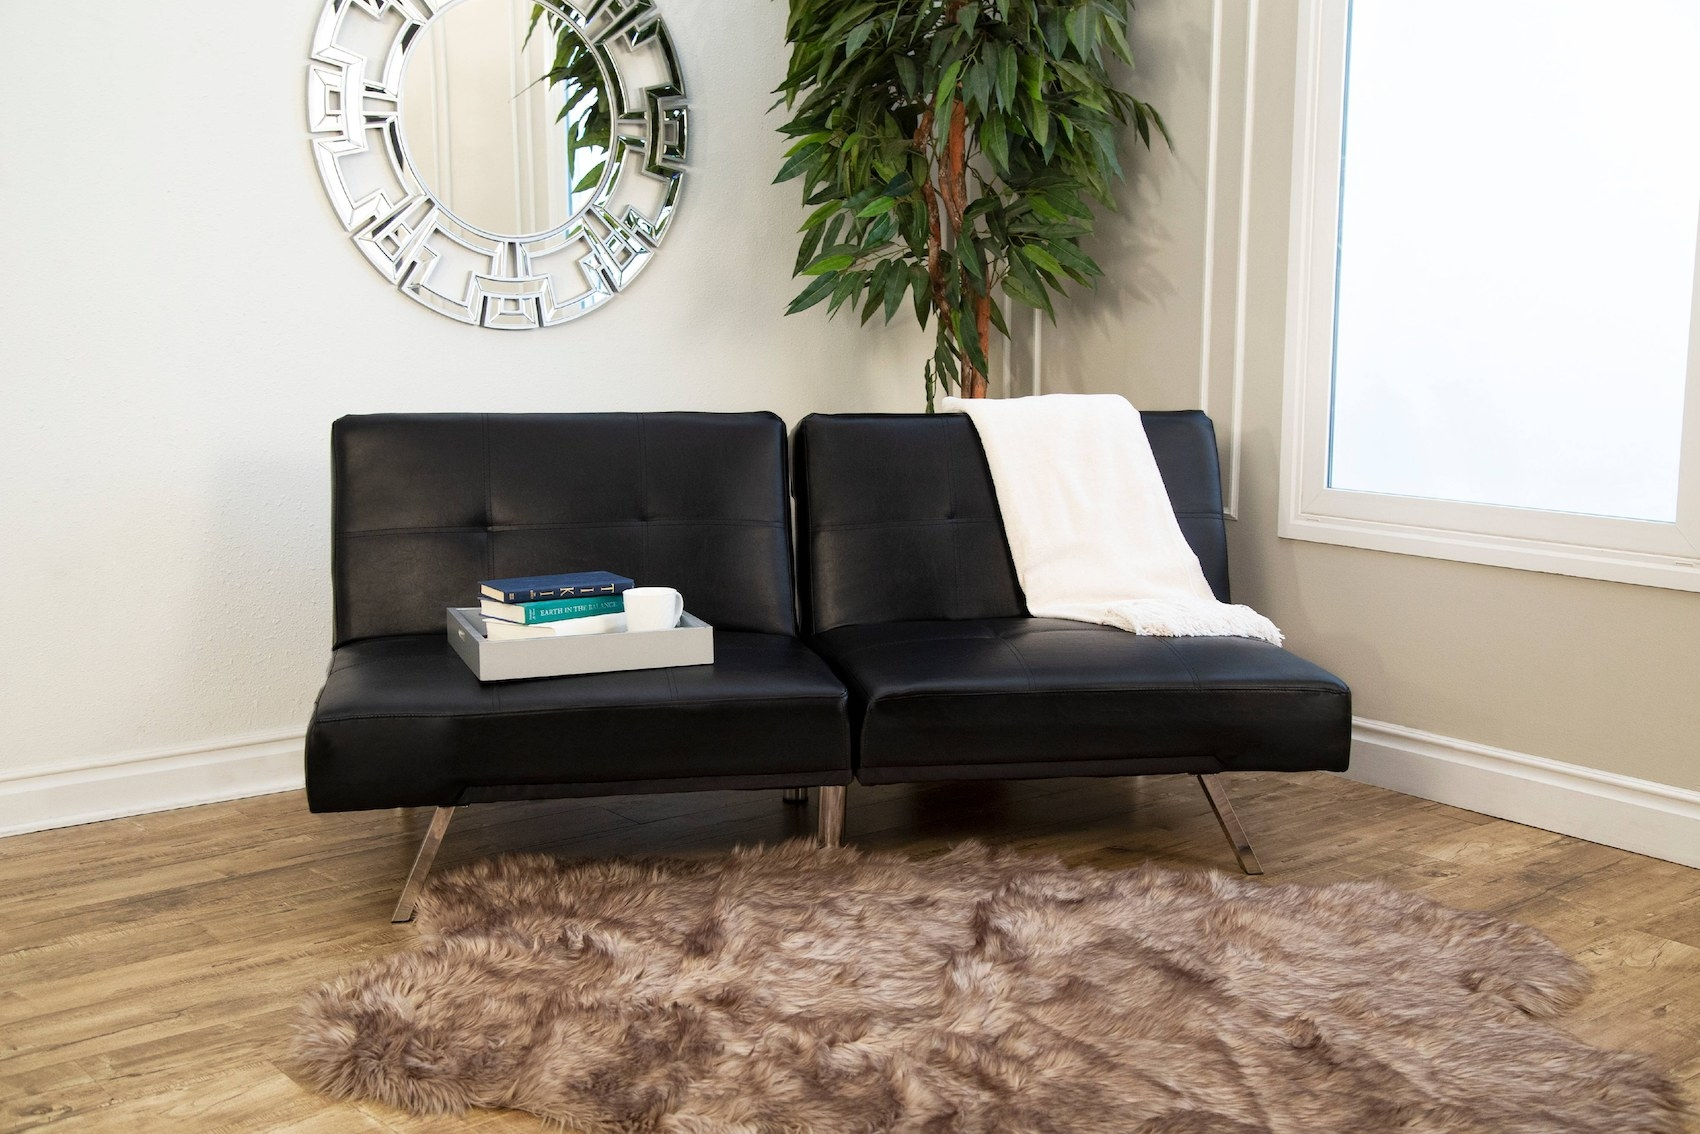 The black leather sofa with no arms, a slightly tufted back, and chrome legs